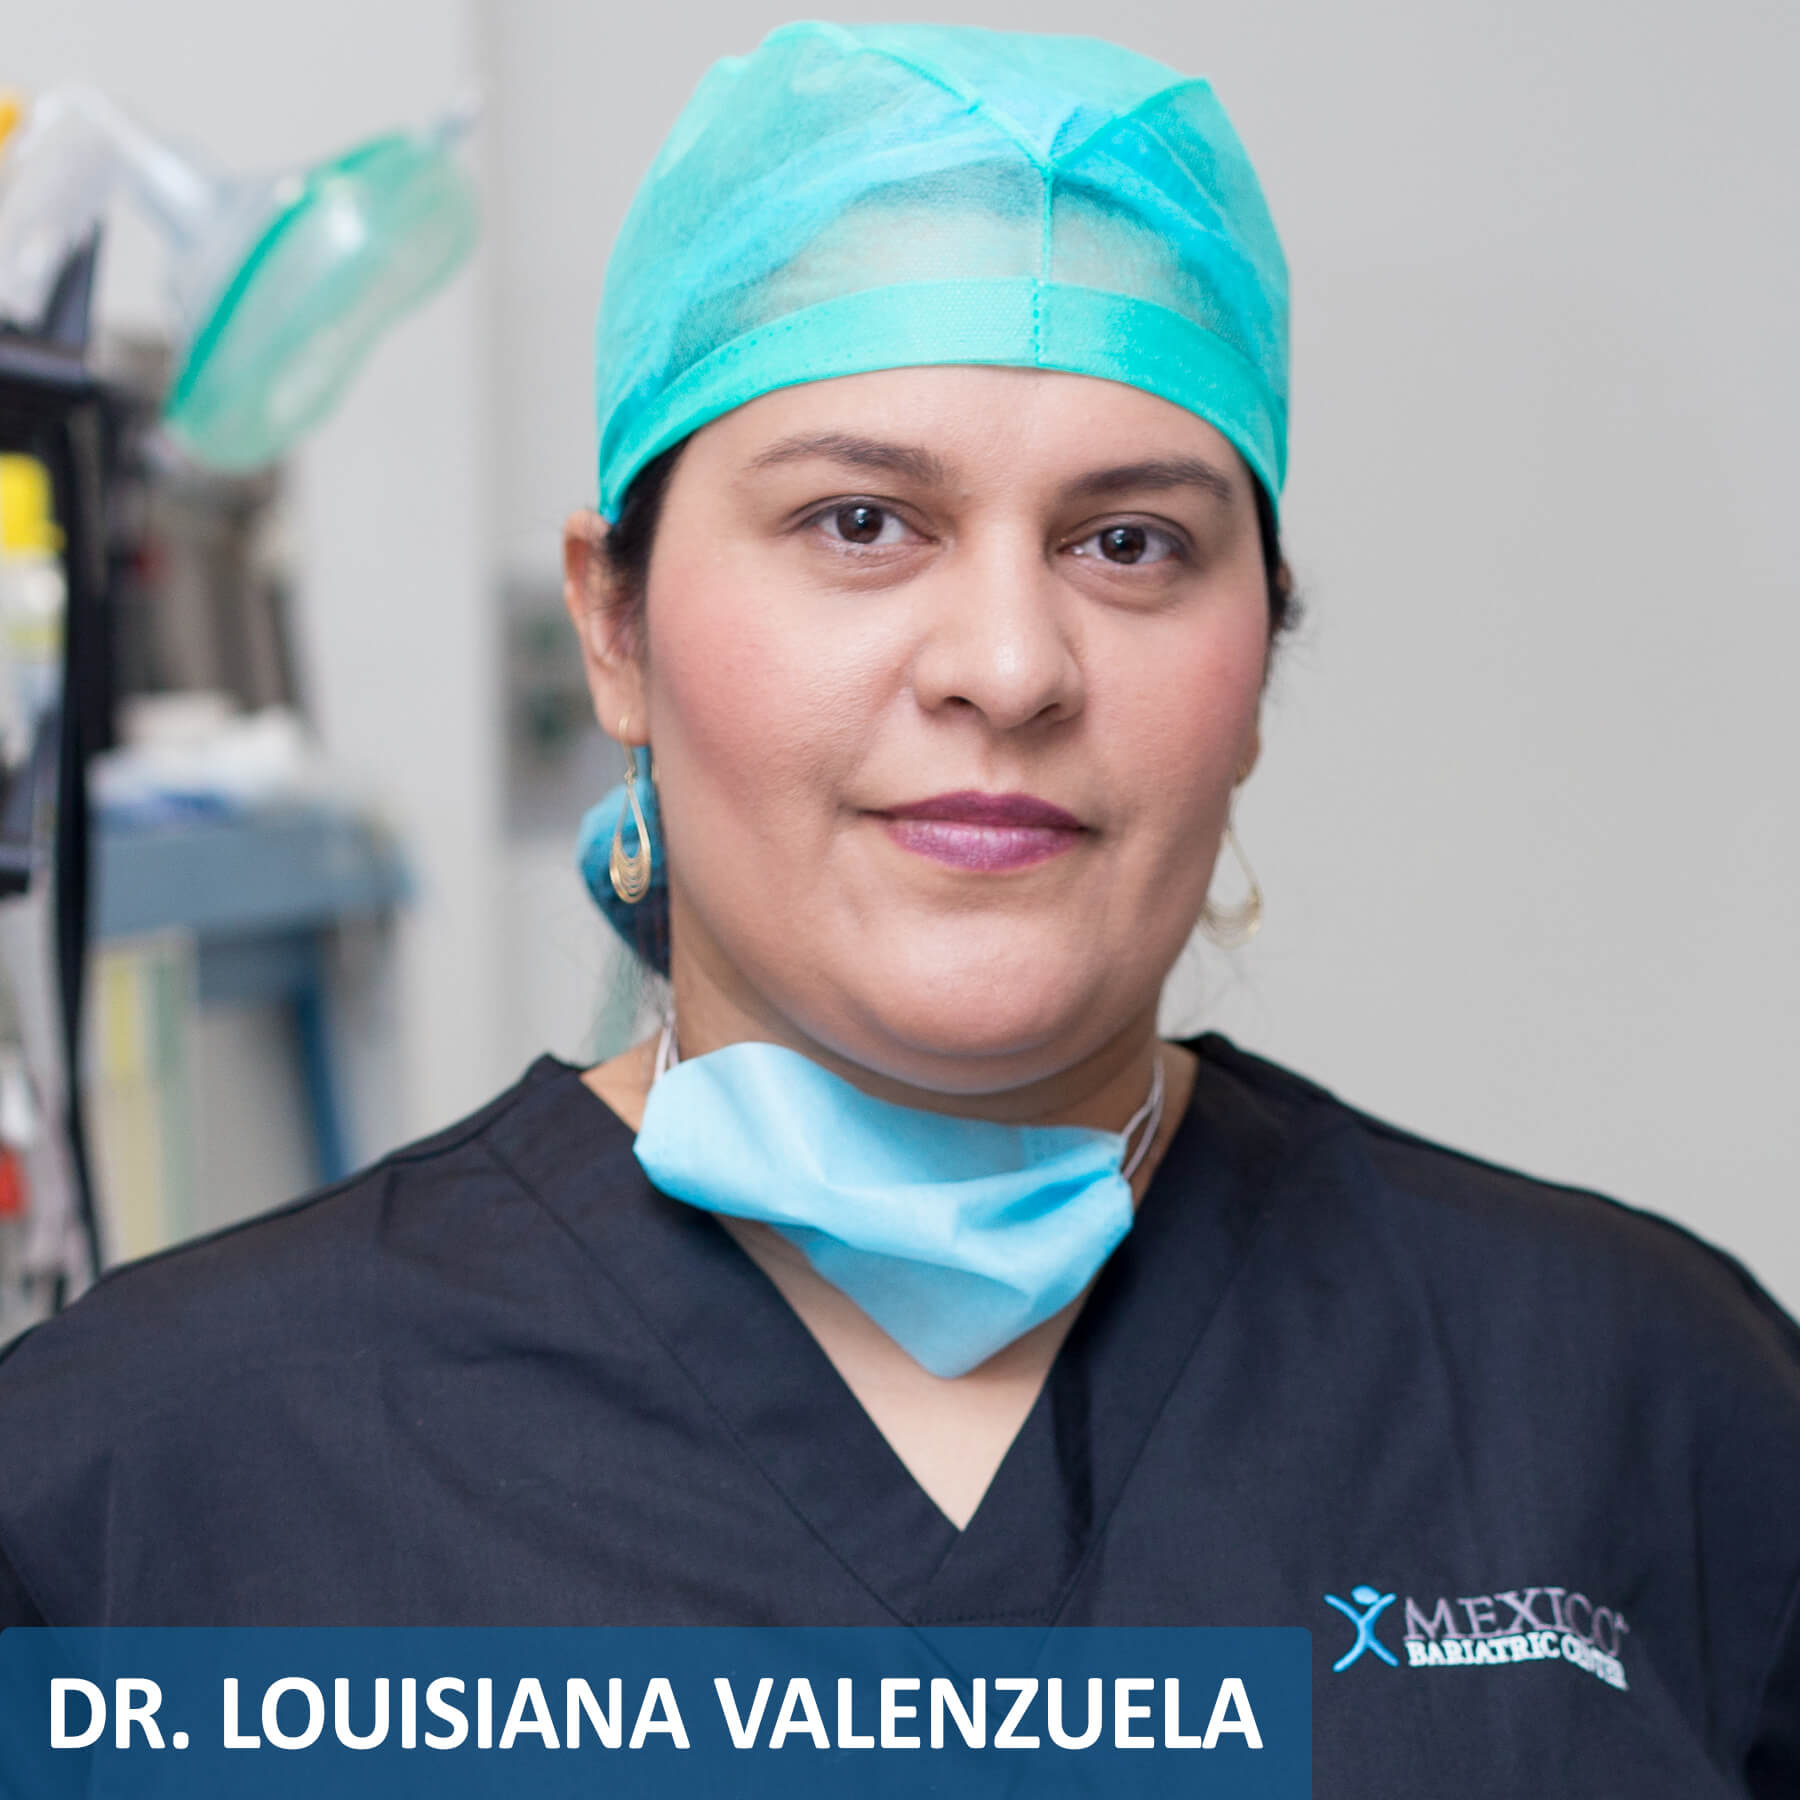 Doctor Louisiana Valenzuela